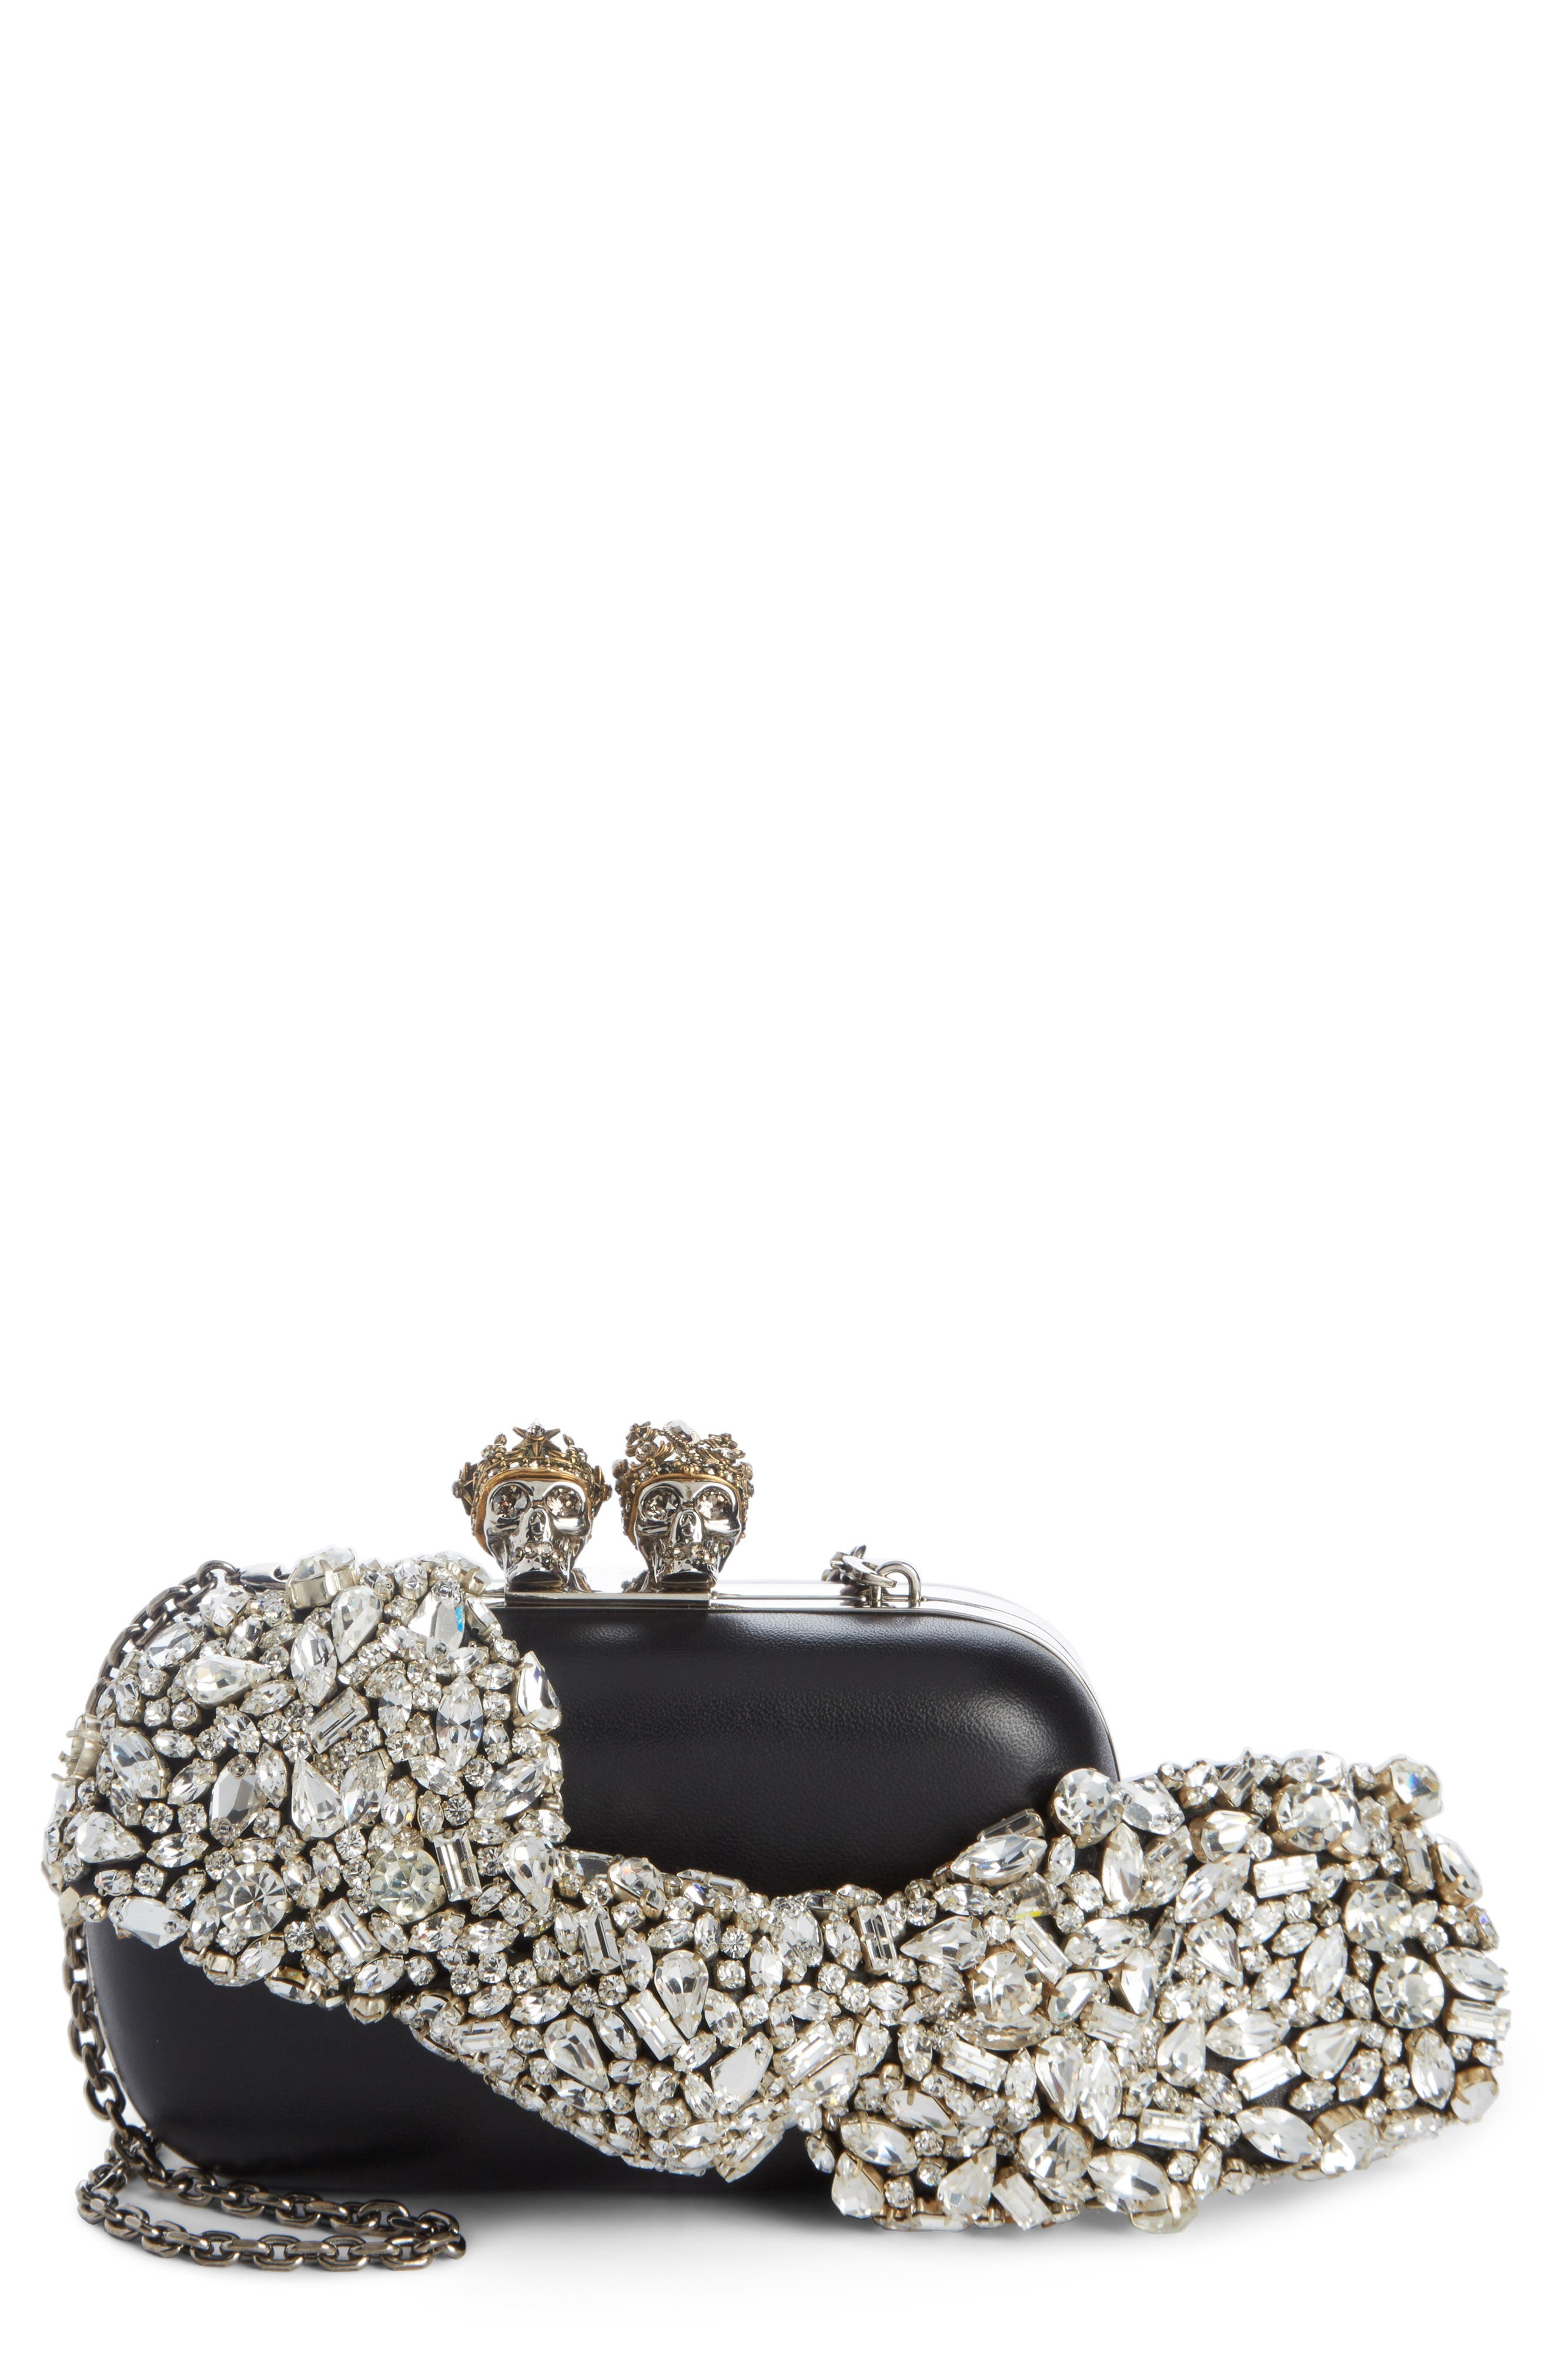 Queen & King Crystal Bow Clutch,                             Main thumbnail 1, color,                             Black